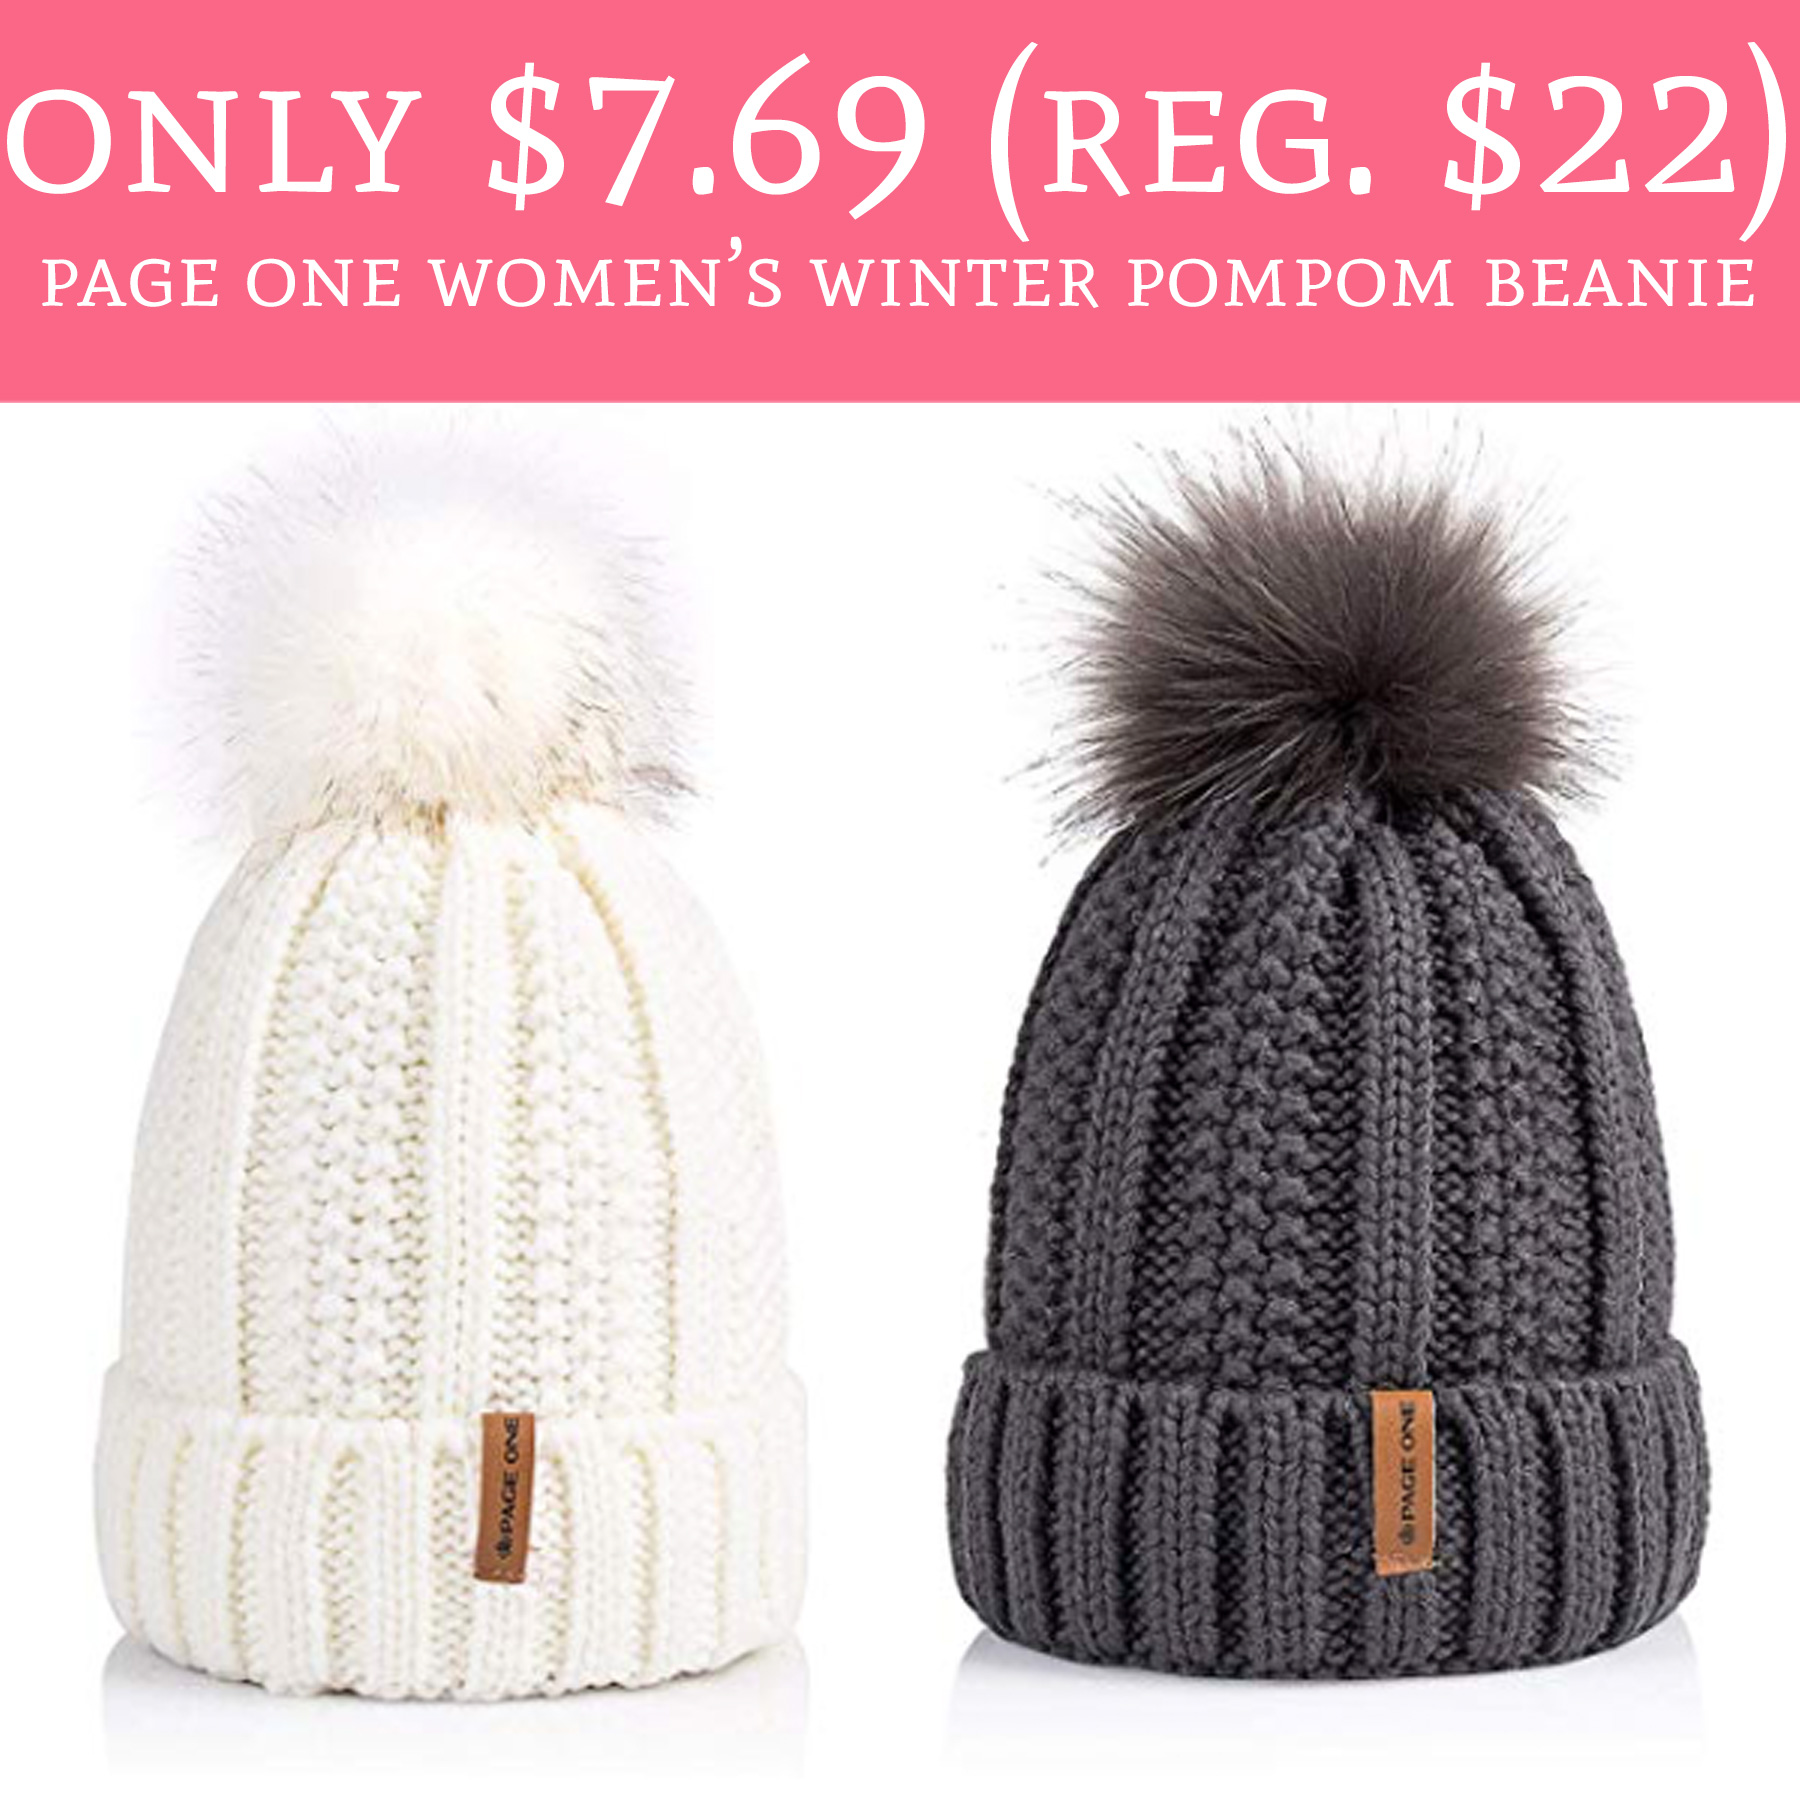 a1234adc5a9 Only  7.69 (Regular  22) Page One Women s Winter Pompom Beanie ...